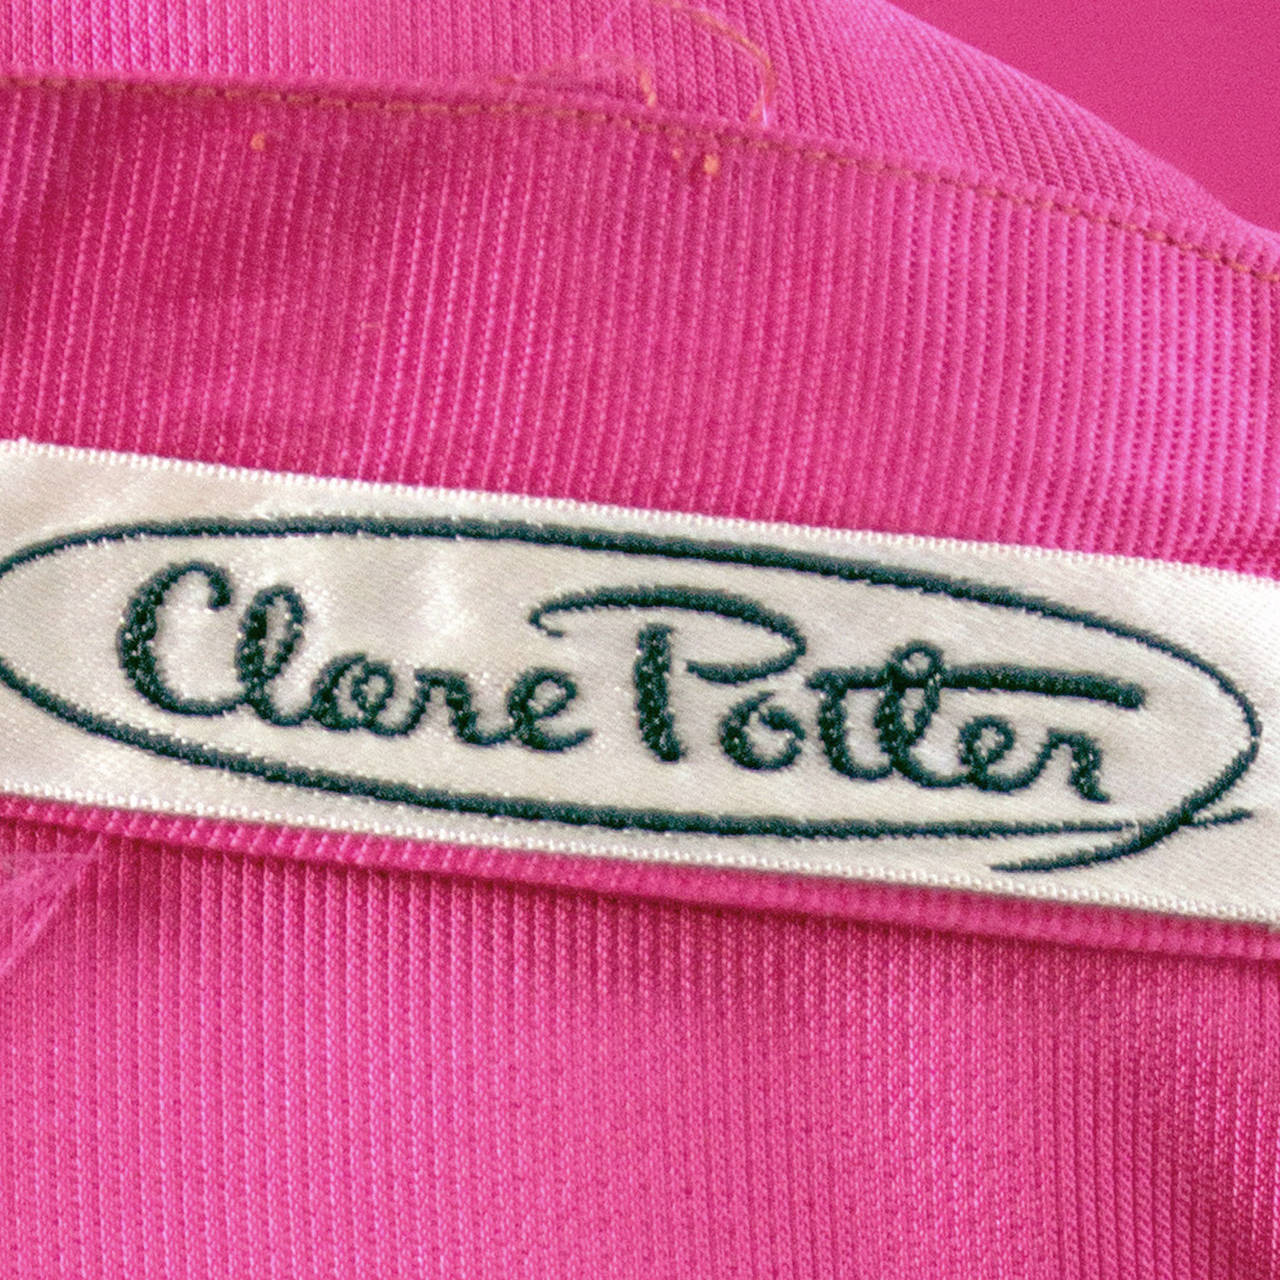 1950s Rare Clare Potter Vintage Pink Long Evening Gown Documented 6